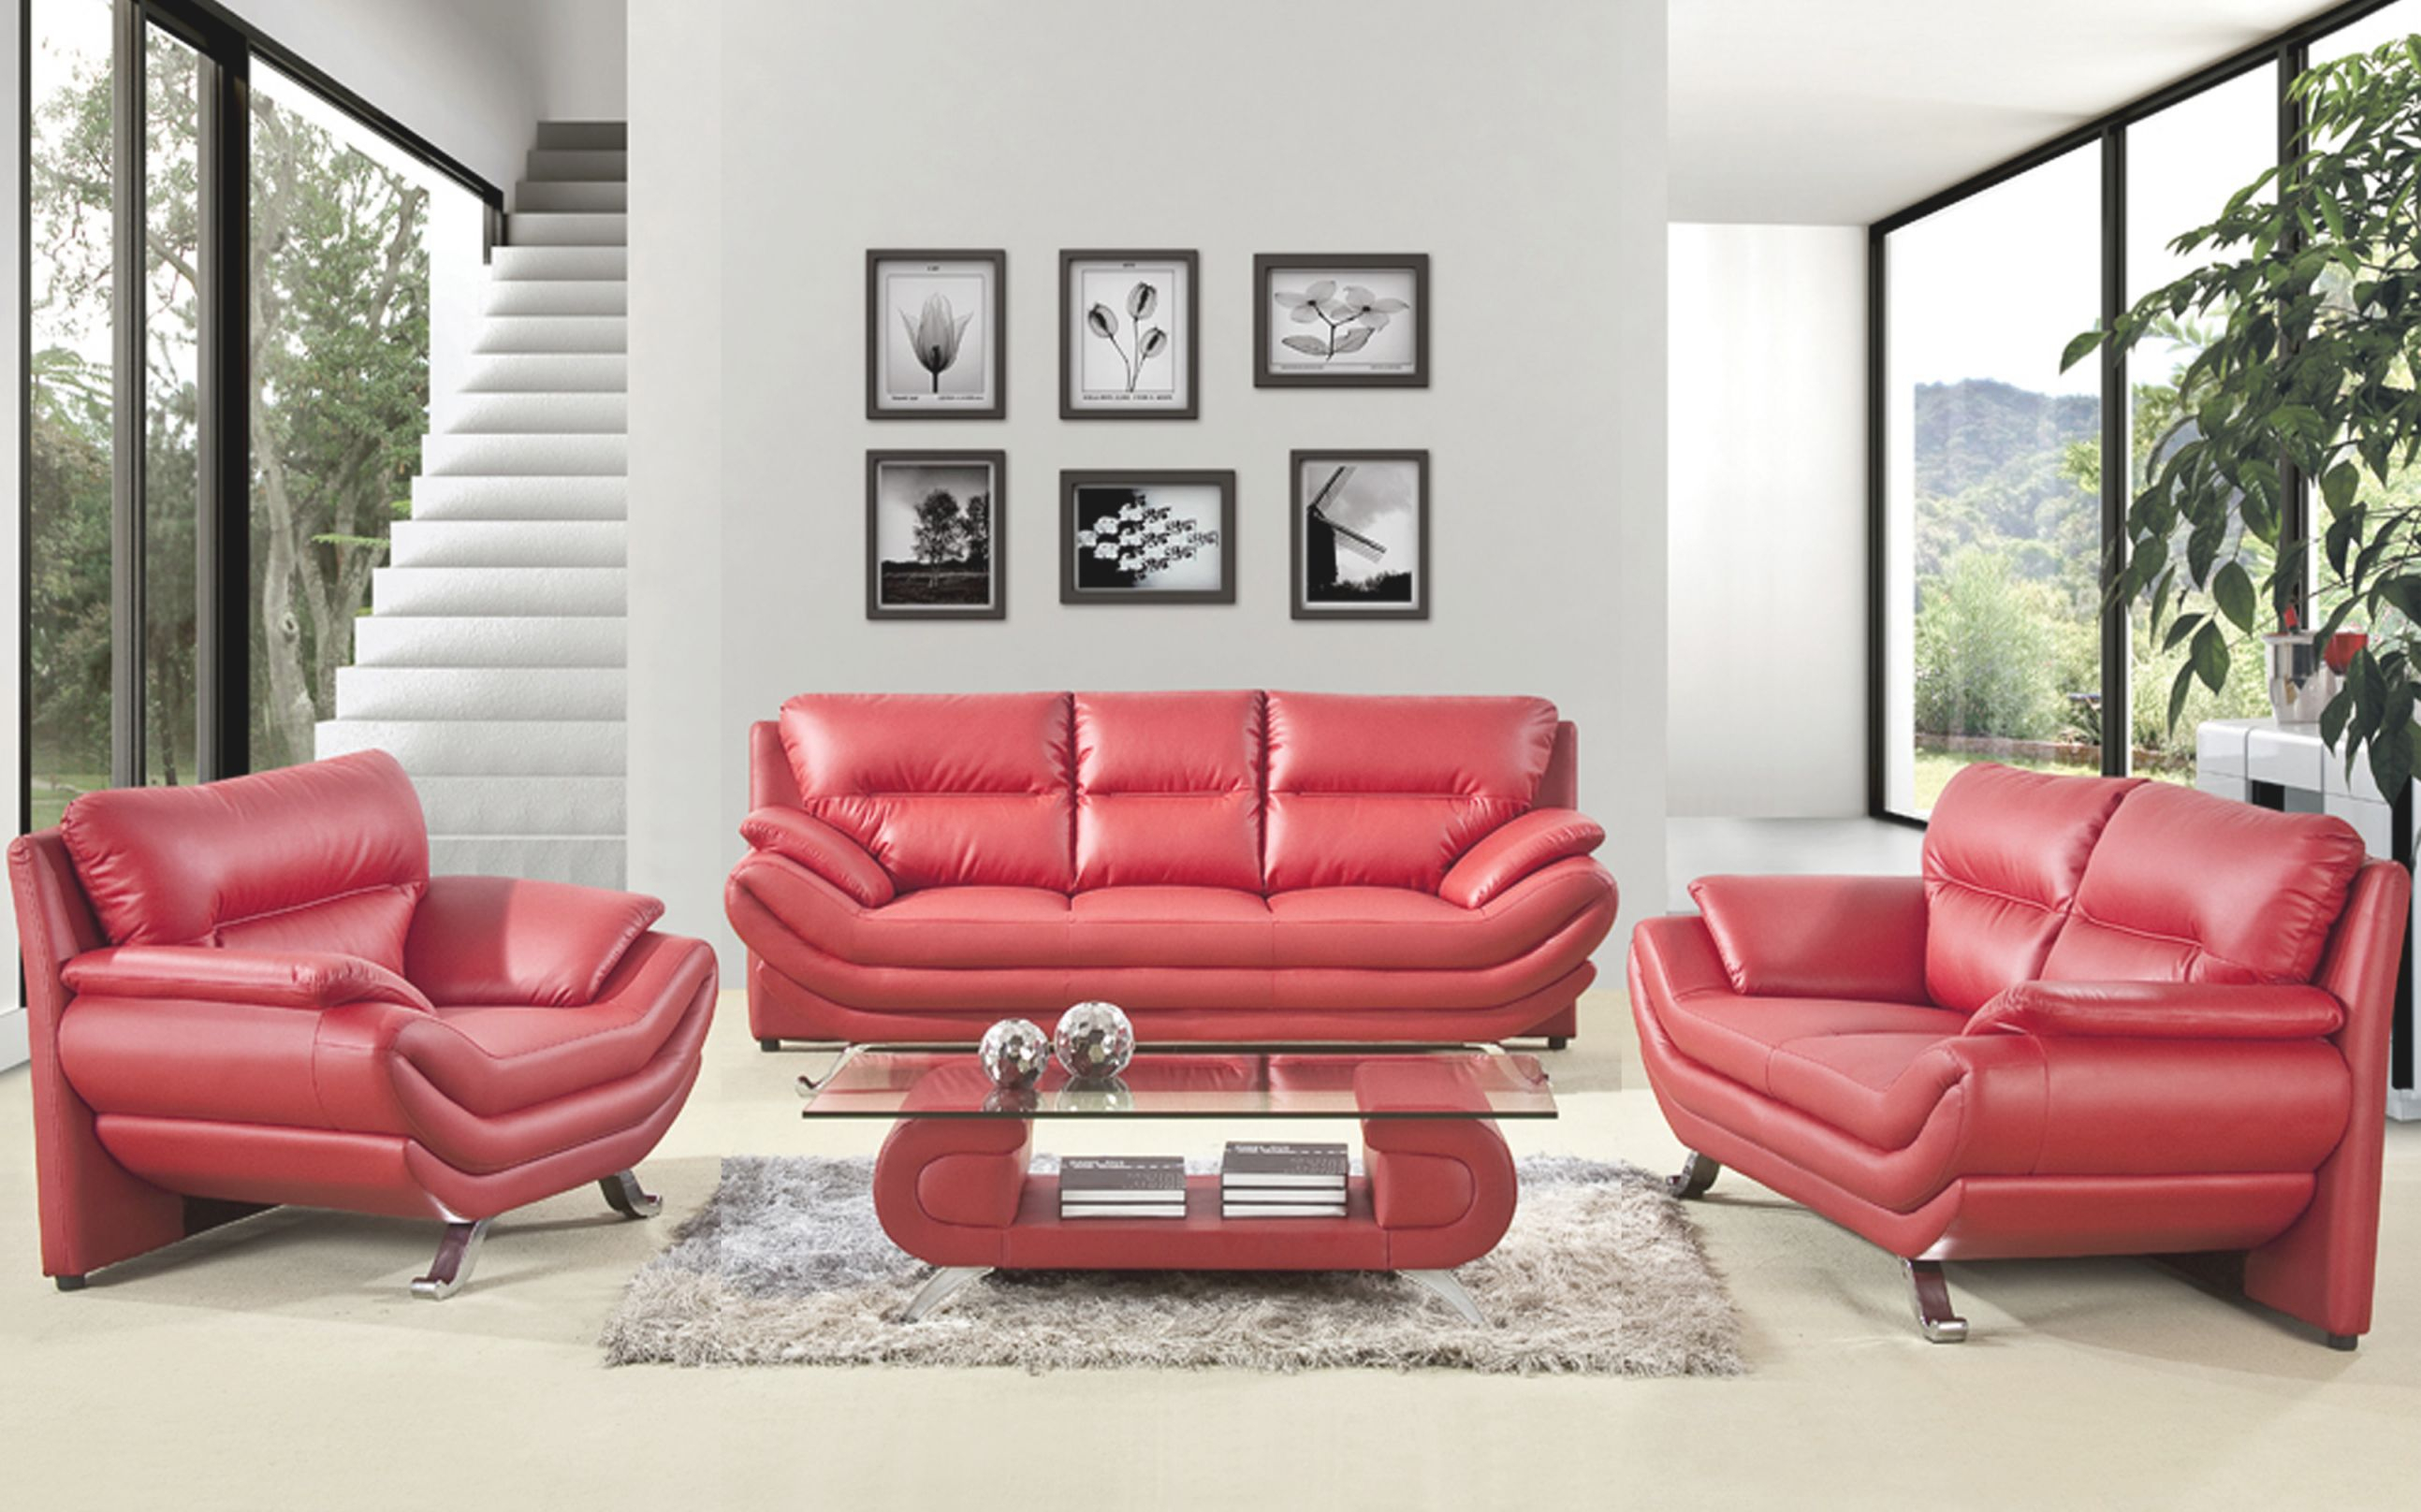 32 Red Leather Sofa Decorating Ideas Red Leather Couch Pertaining To Red Leather Living Room Furniture Awesome Decors